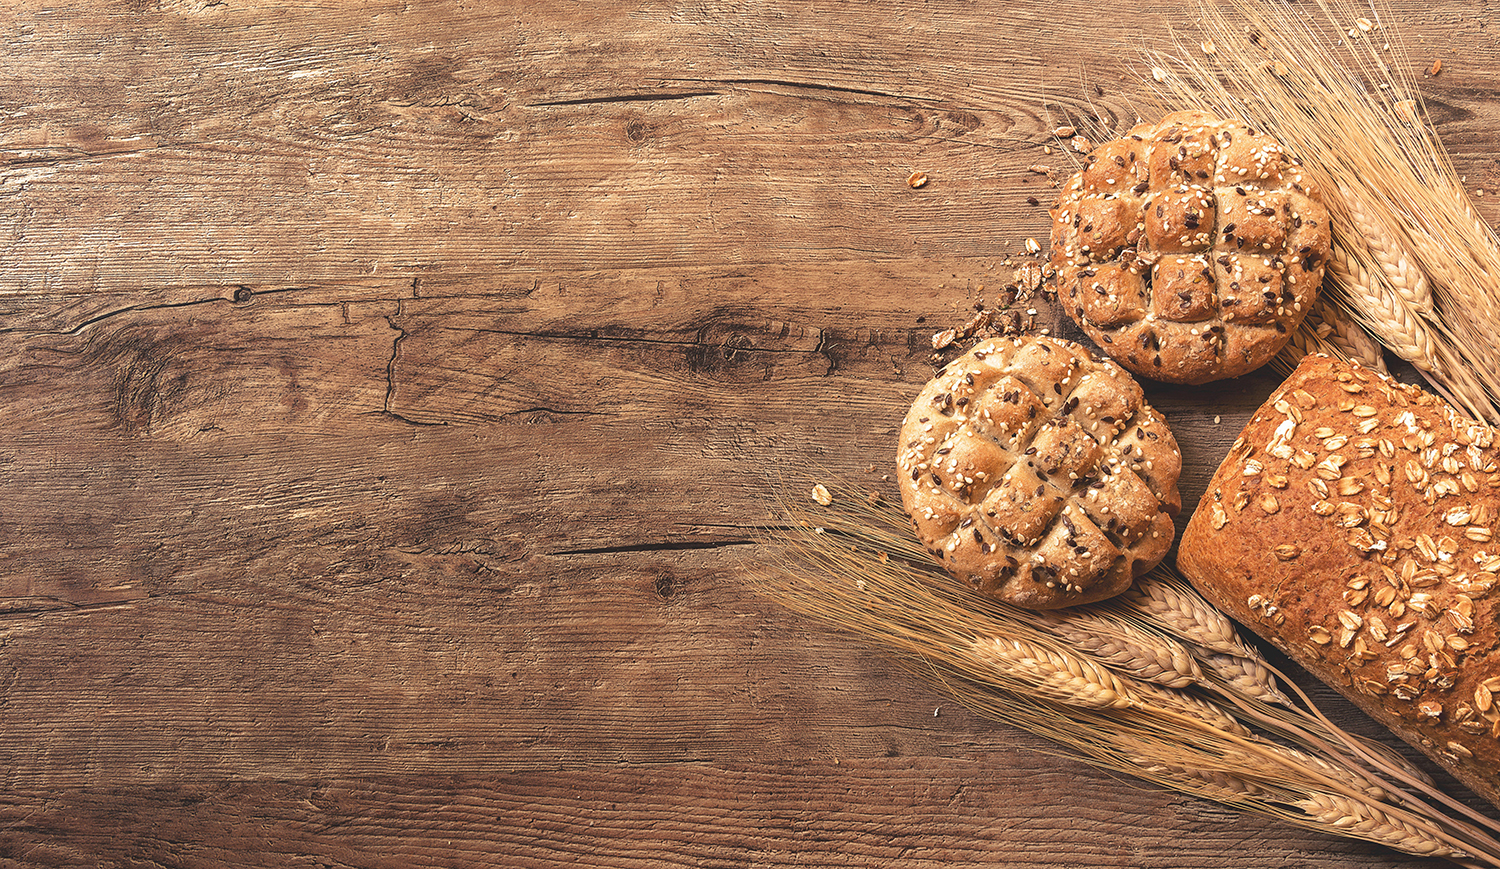 Replace refined carbohydrates and processed flour with organic whole grains.